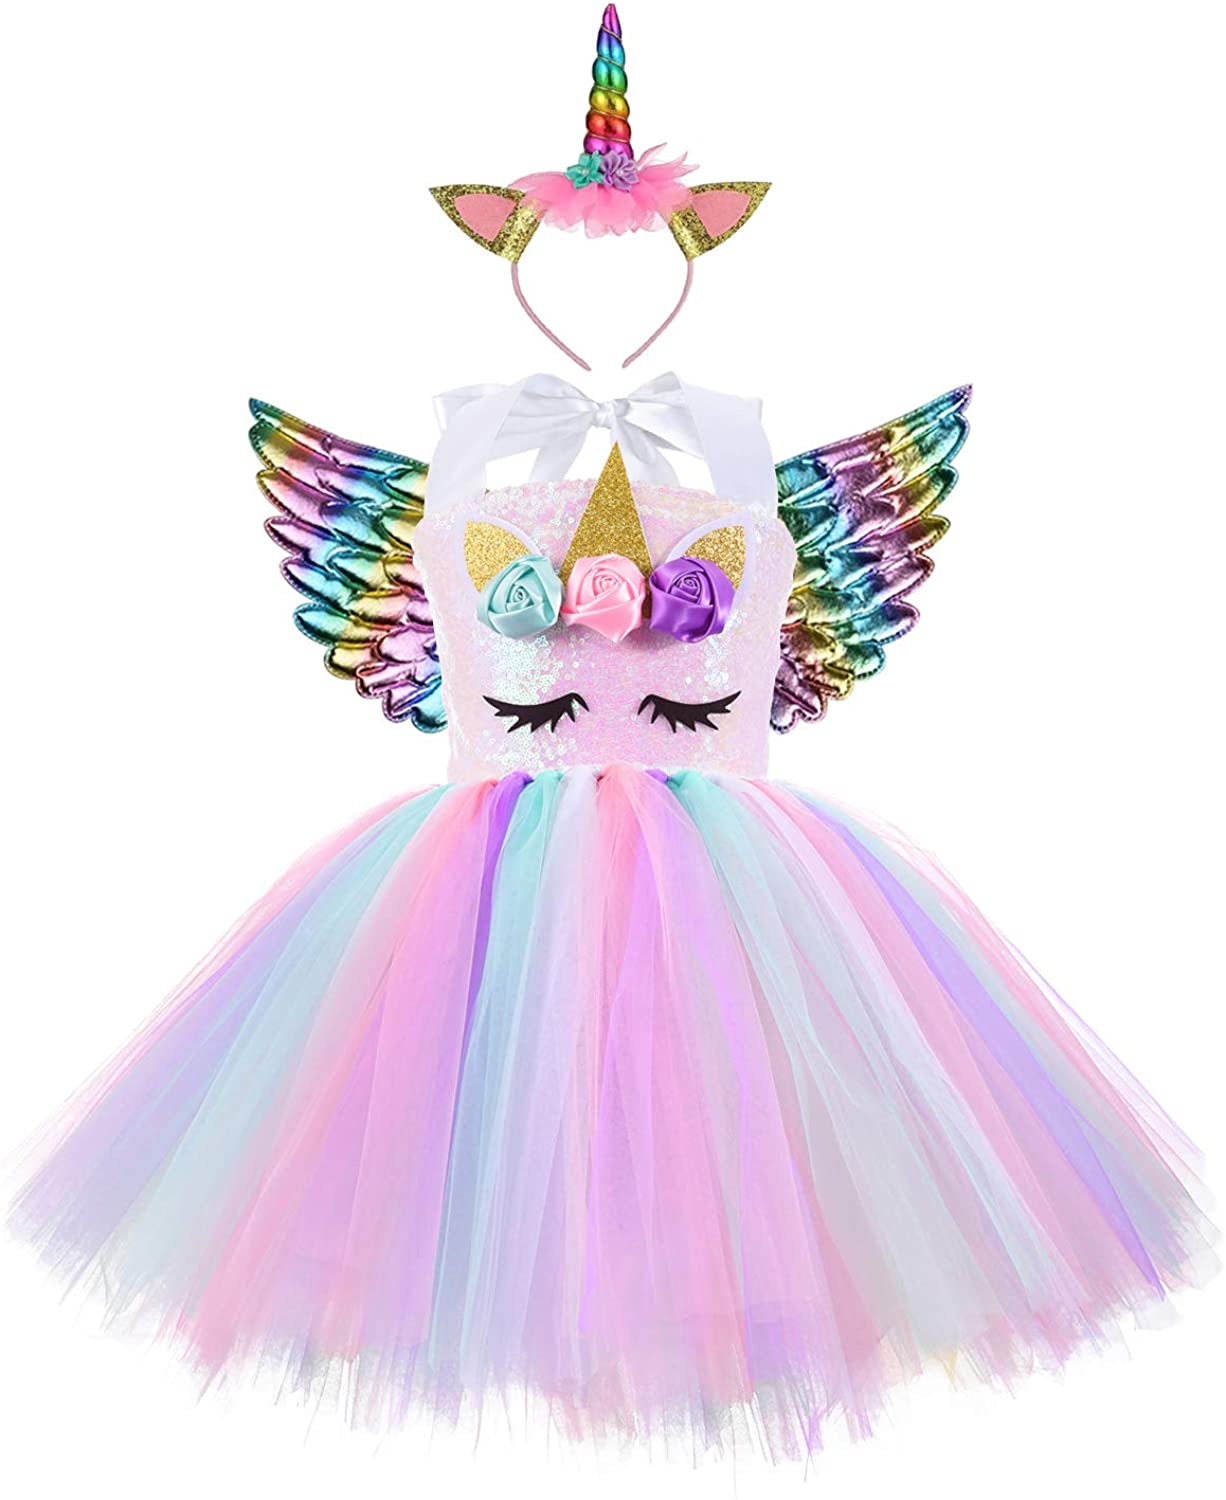 Unicorn Costume for Girls Baby Unicorn Tutu Dress Outfit Princess Party Costumes with Headband and Wings